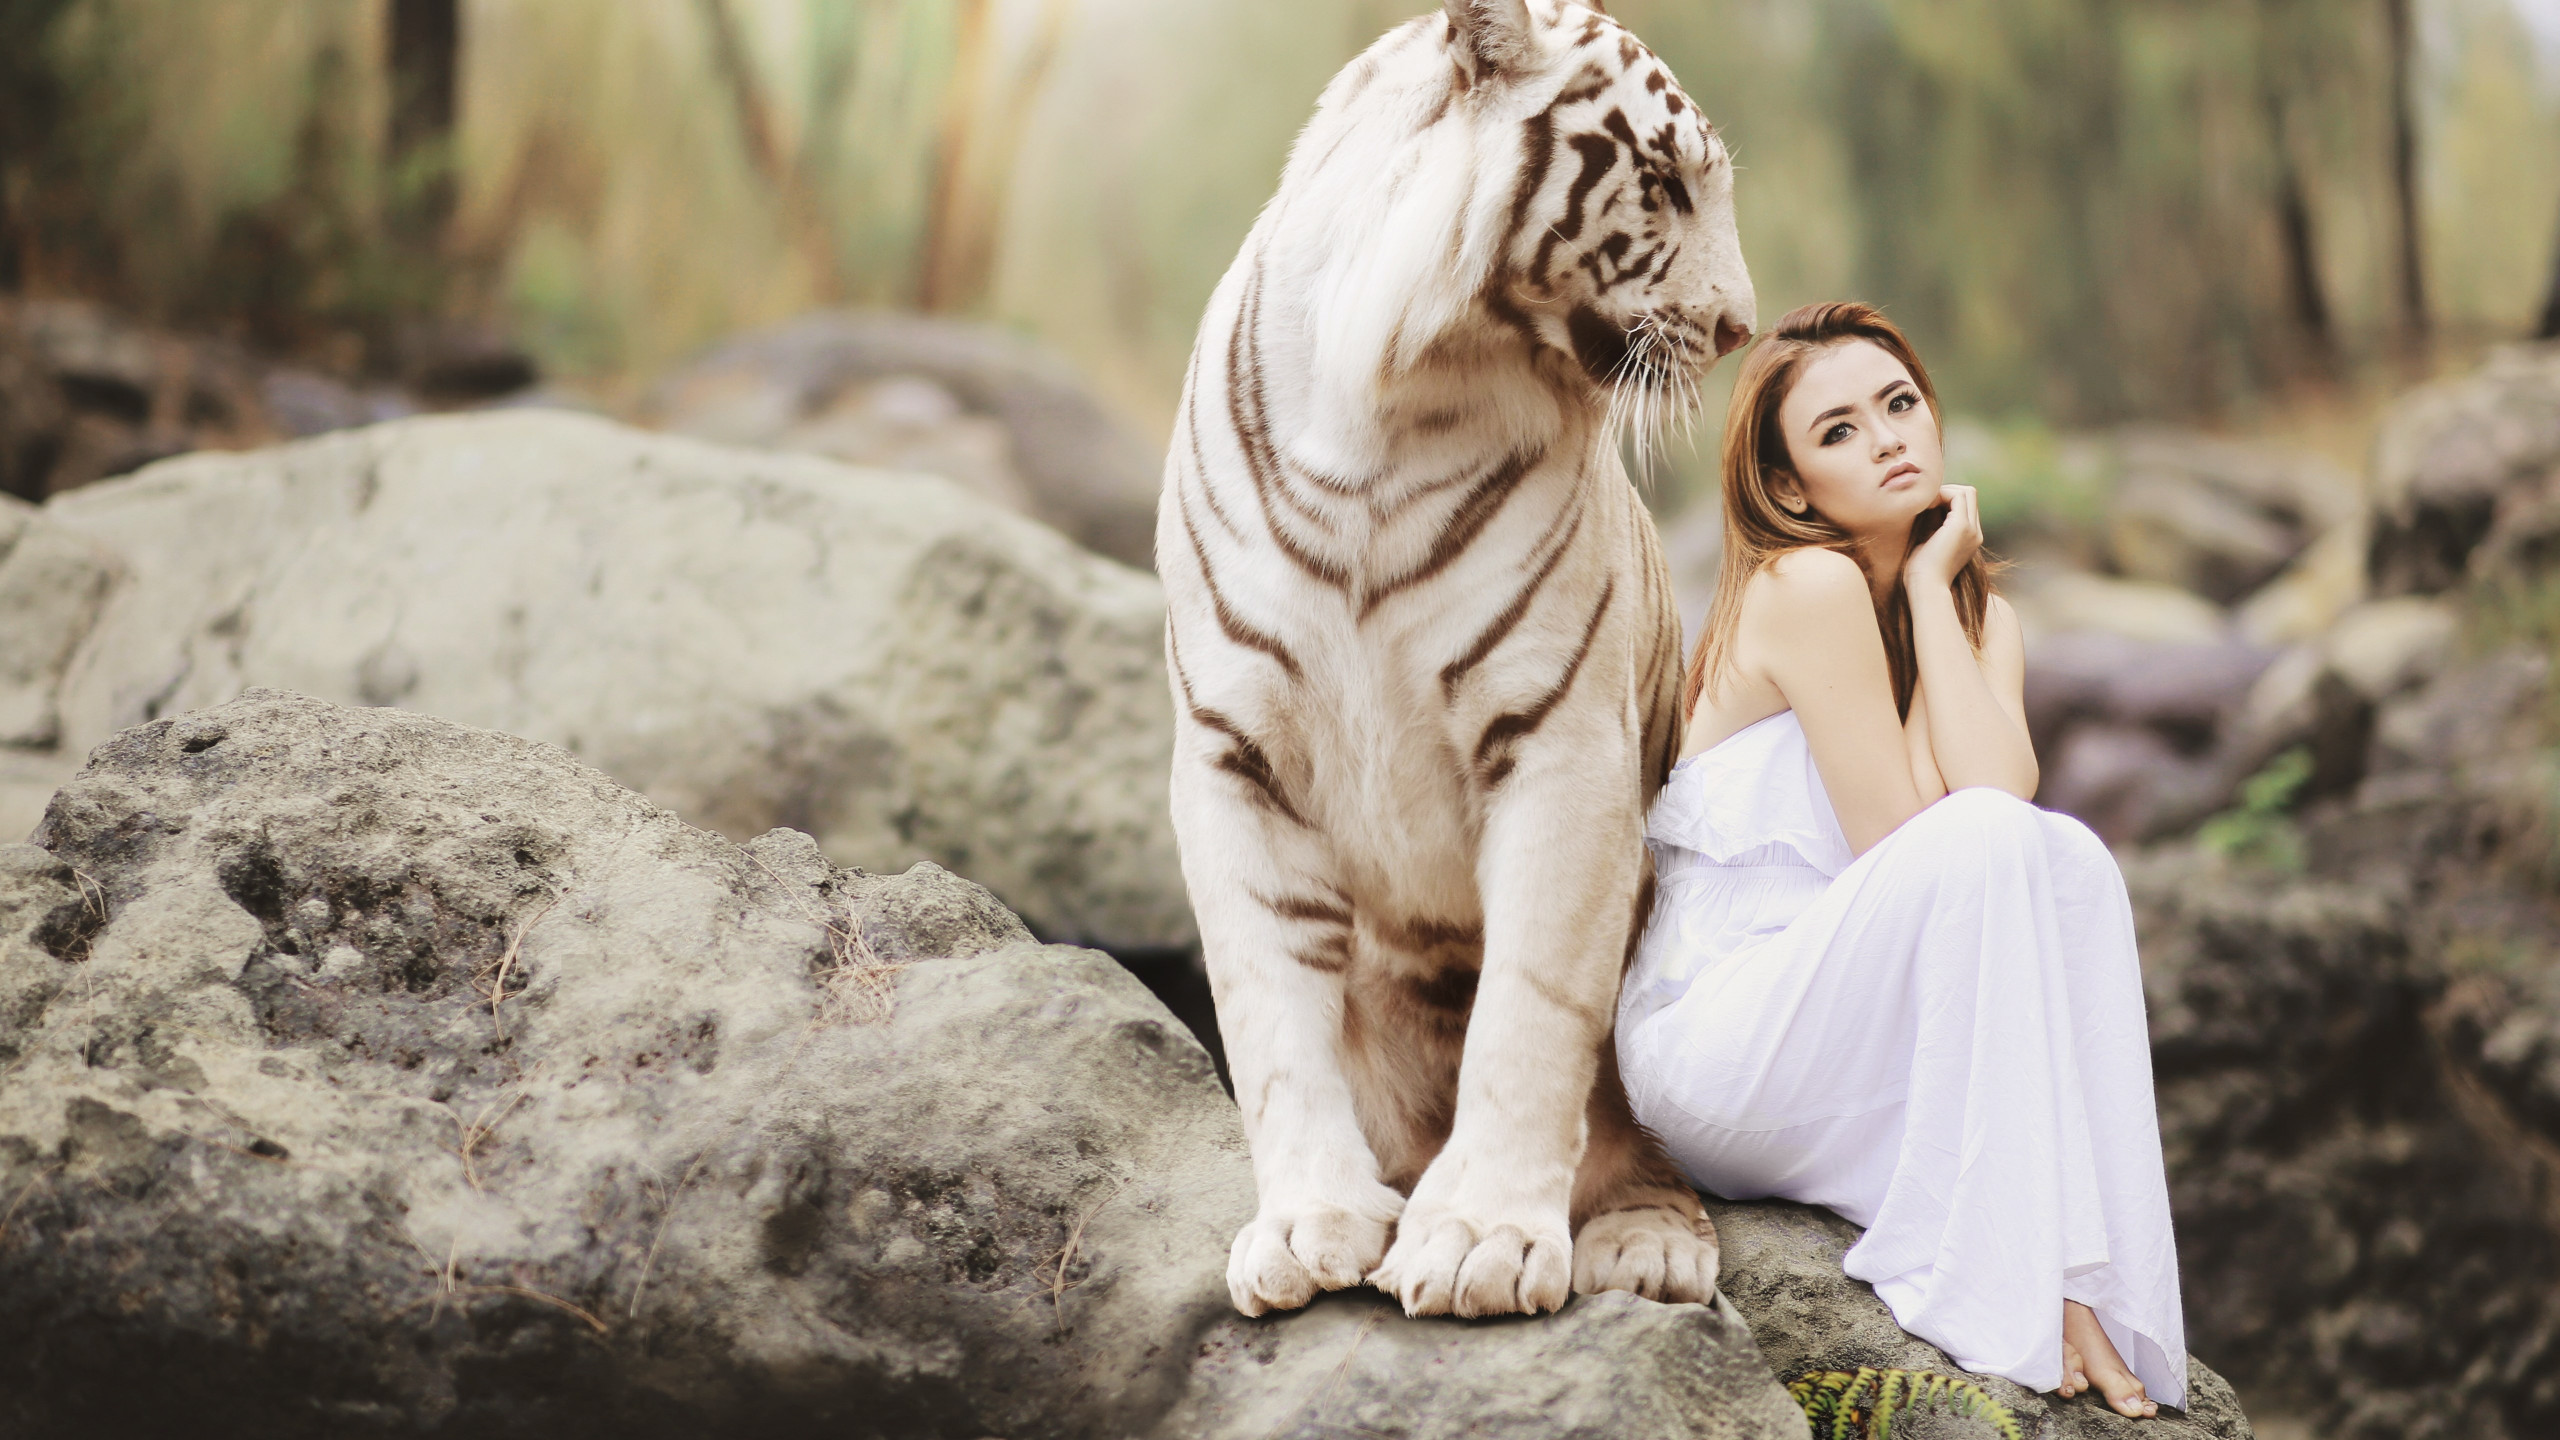 Bengal tiger and a beautiful girl | 2560x1440 wallpaper